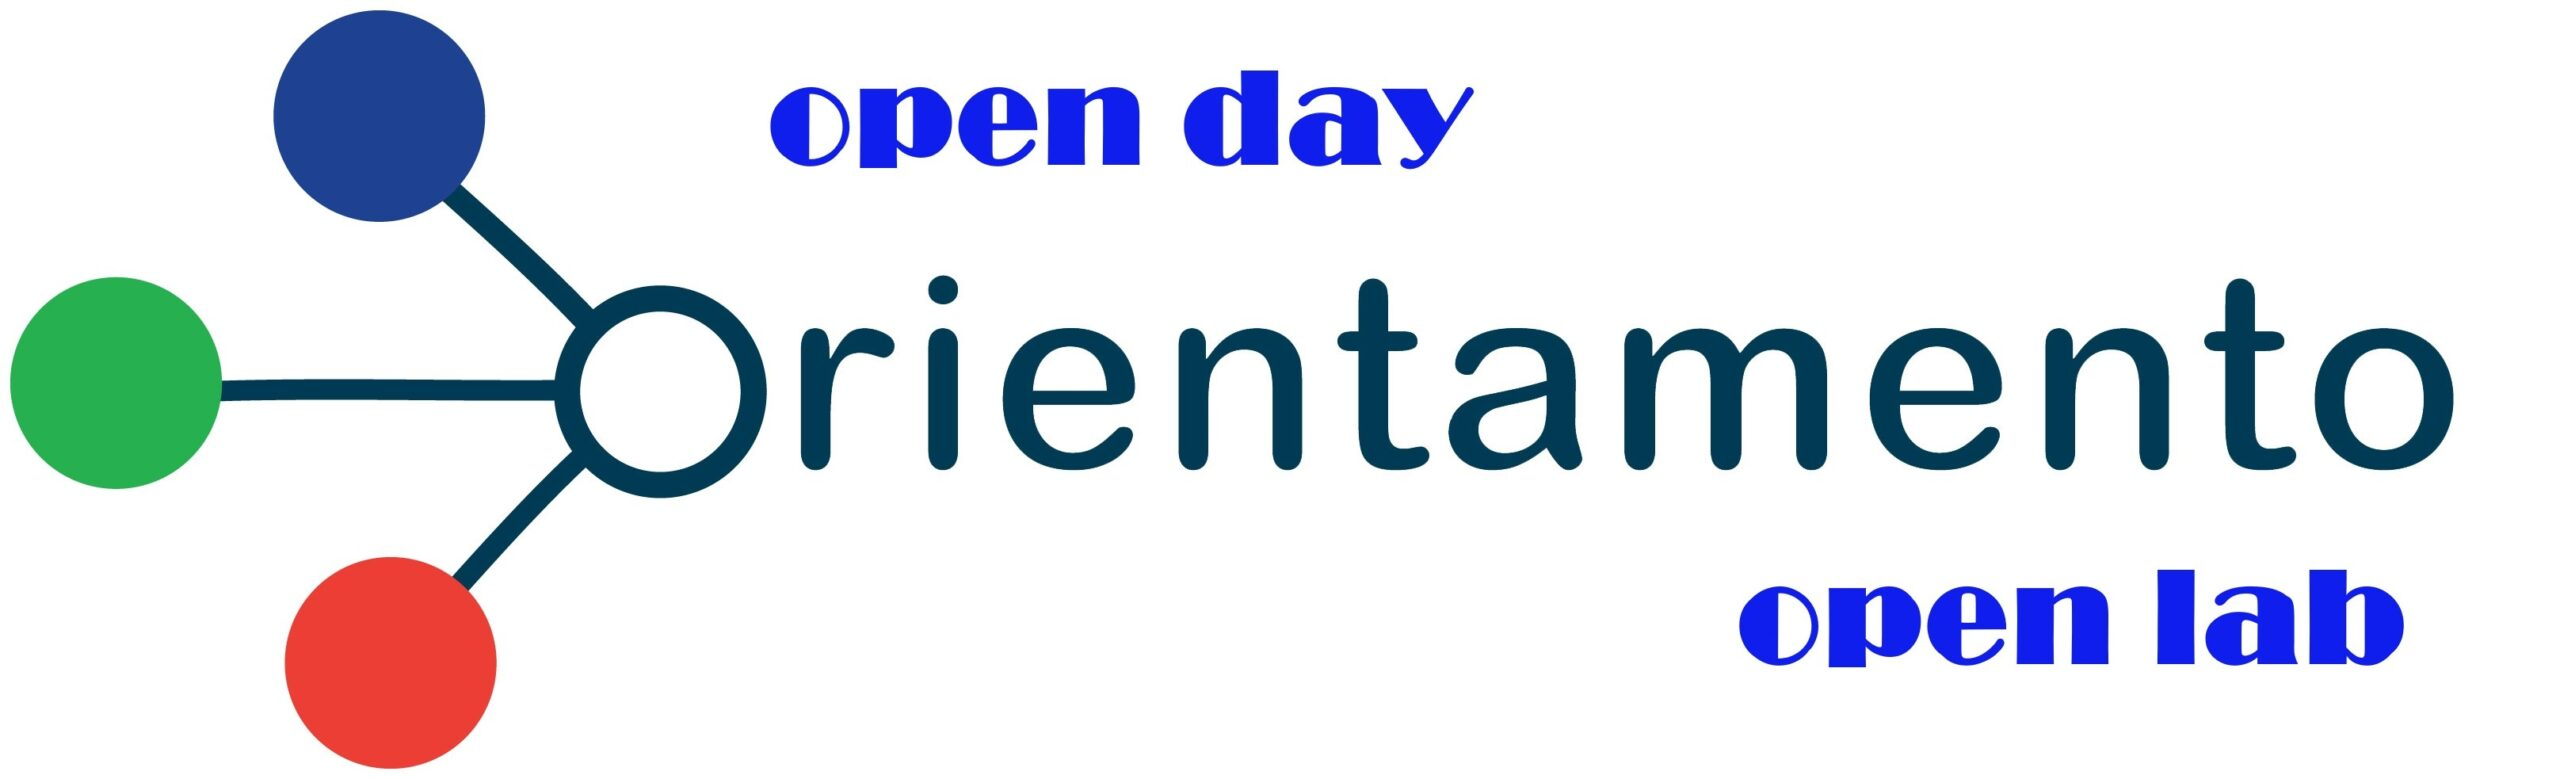 Open day - open lab.